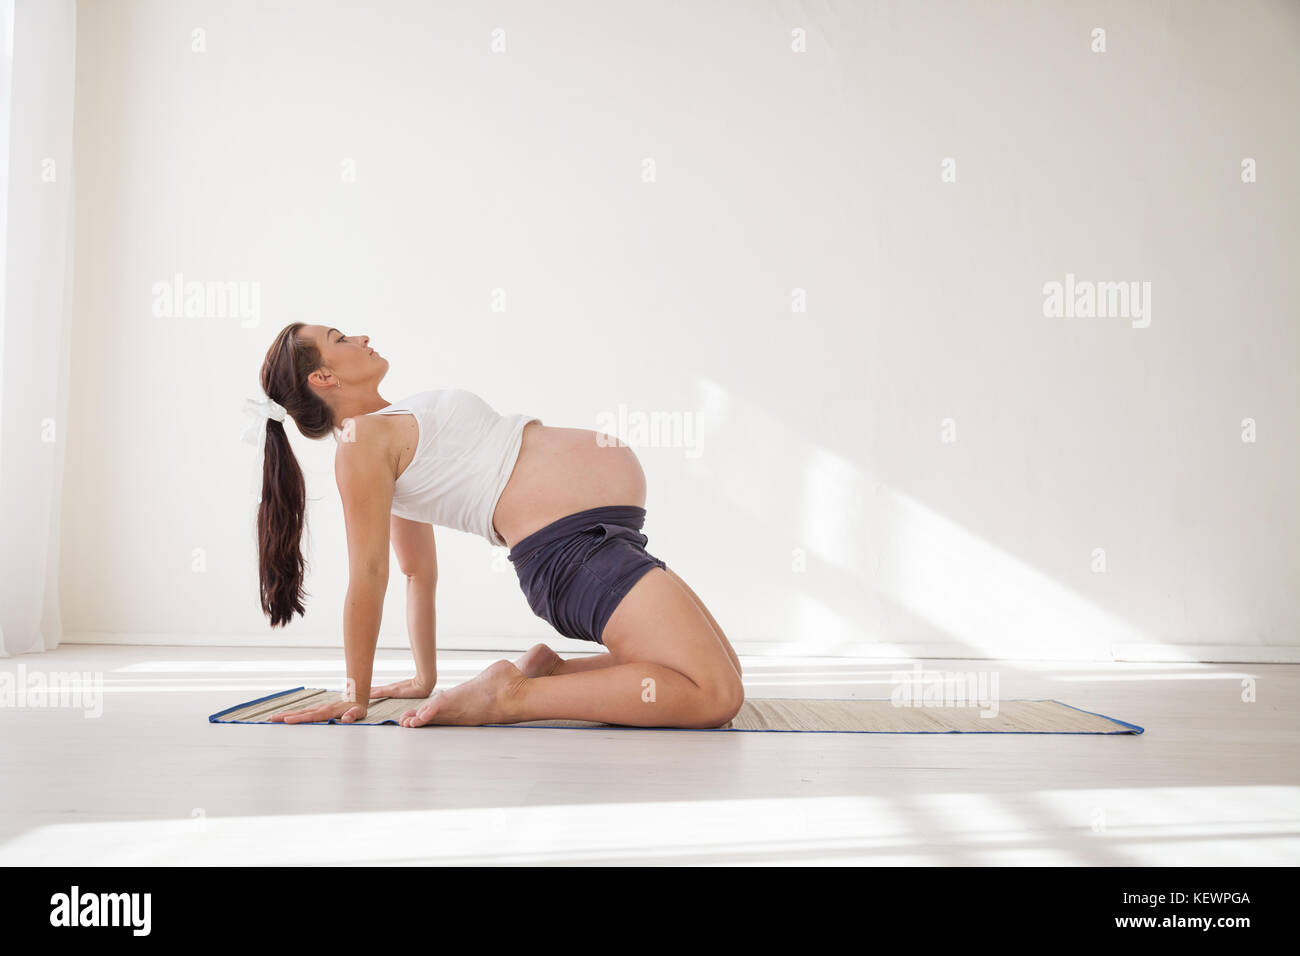 a pregnant woman is engaged in gymnastics and yoga - Stock Image